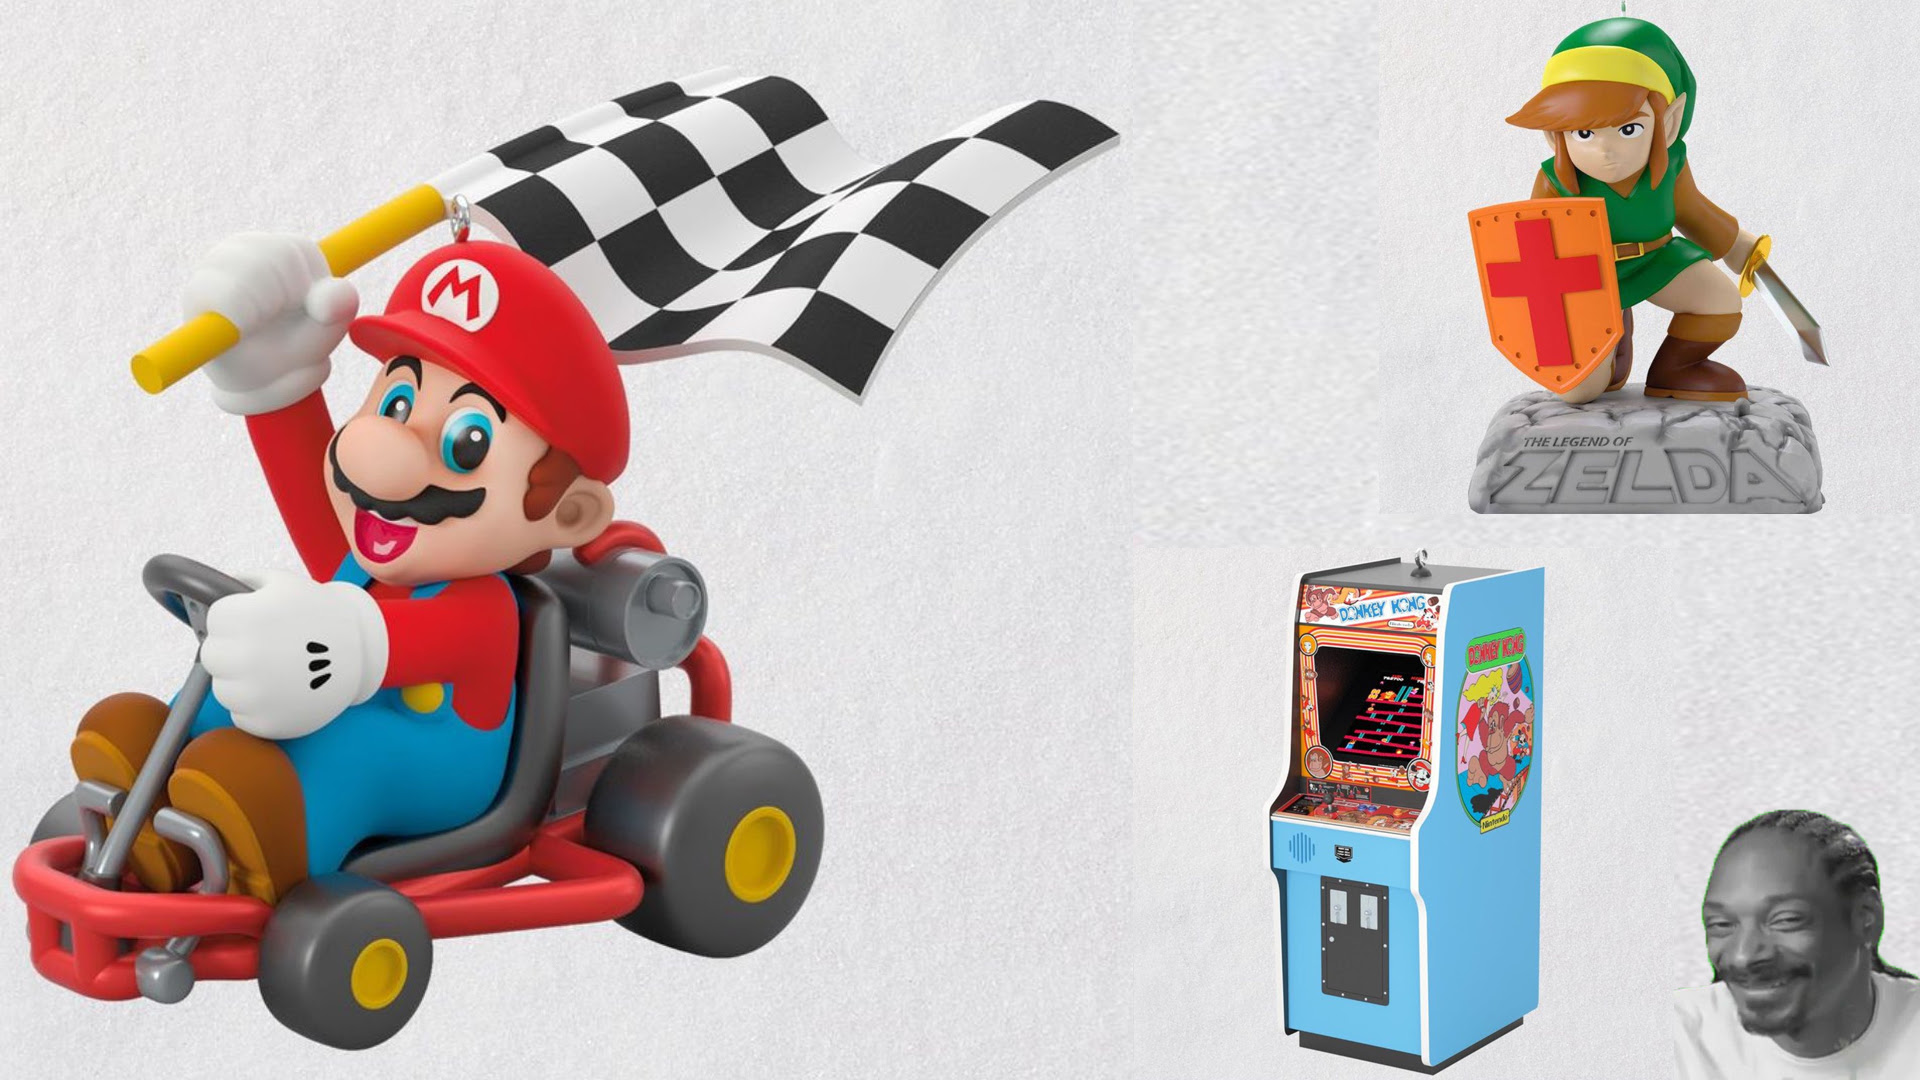 Hallmark will be selling some classic gaming ornaments this holiday screenshot